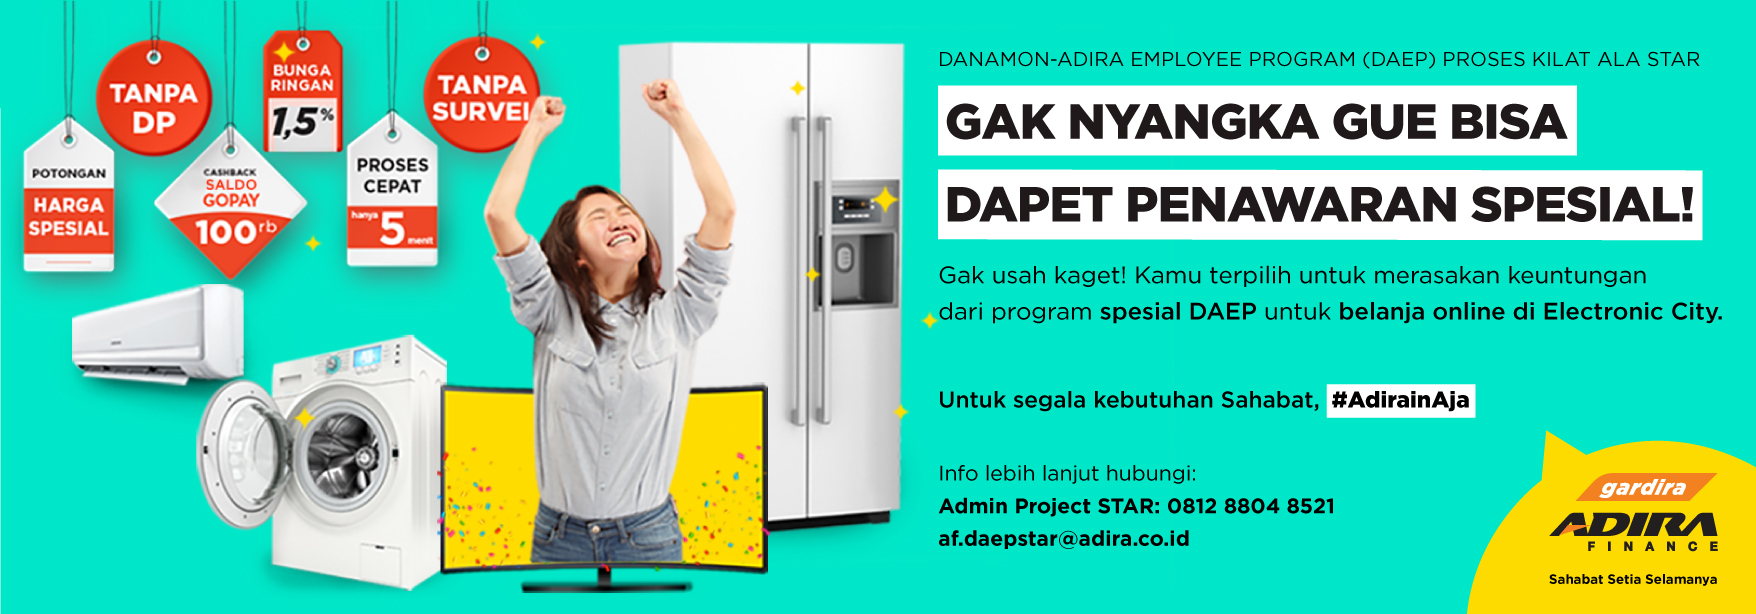 Program Pembiayaan Star Daep Melalui Merchant Electronic City Adira Finance